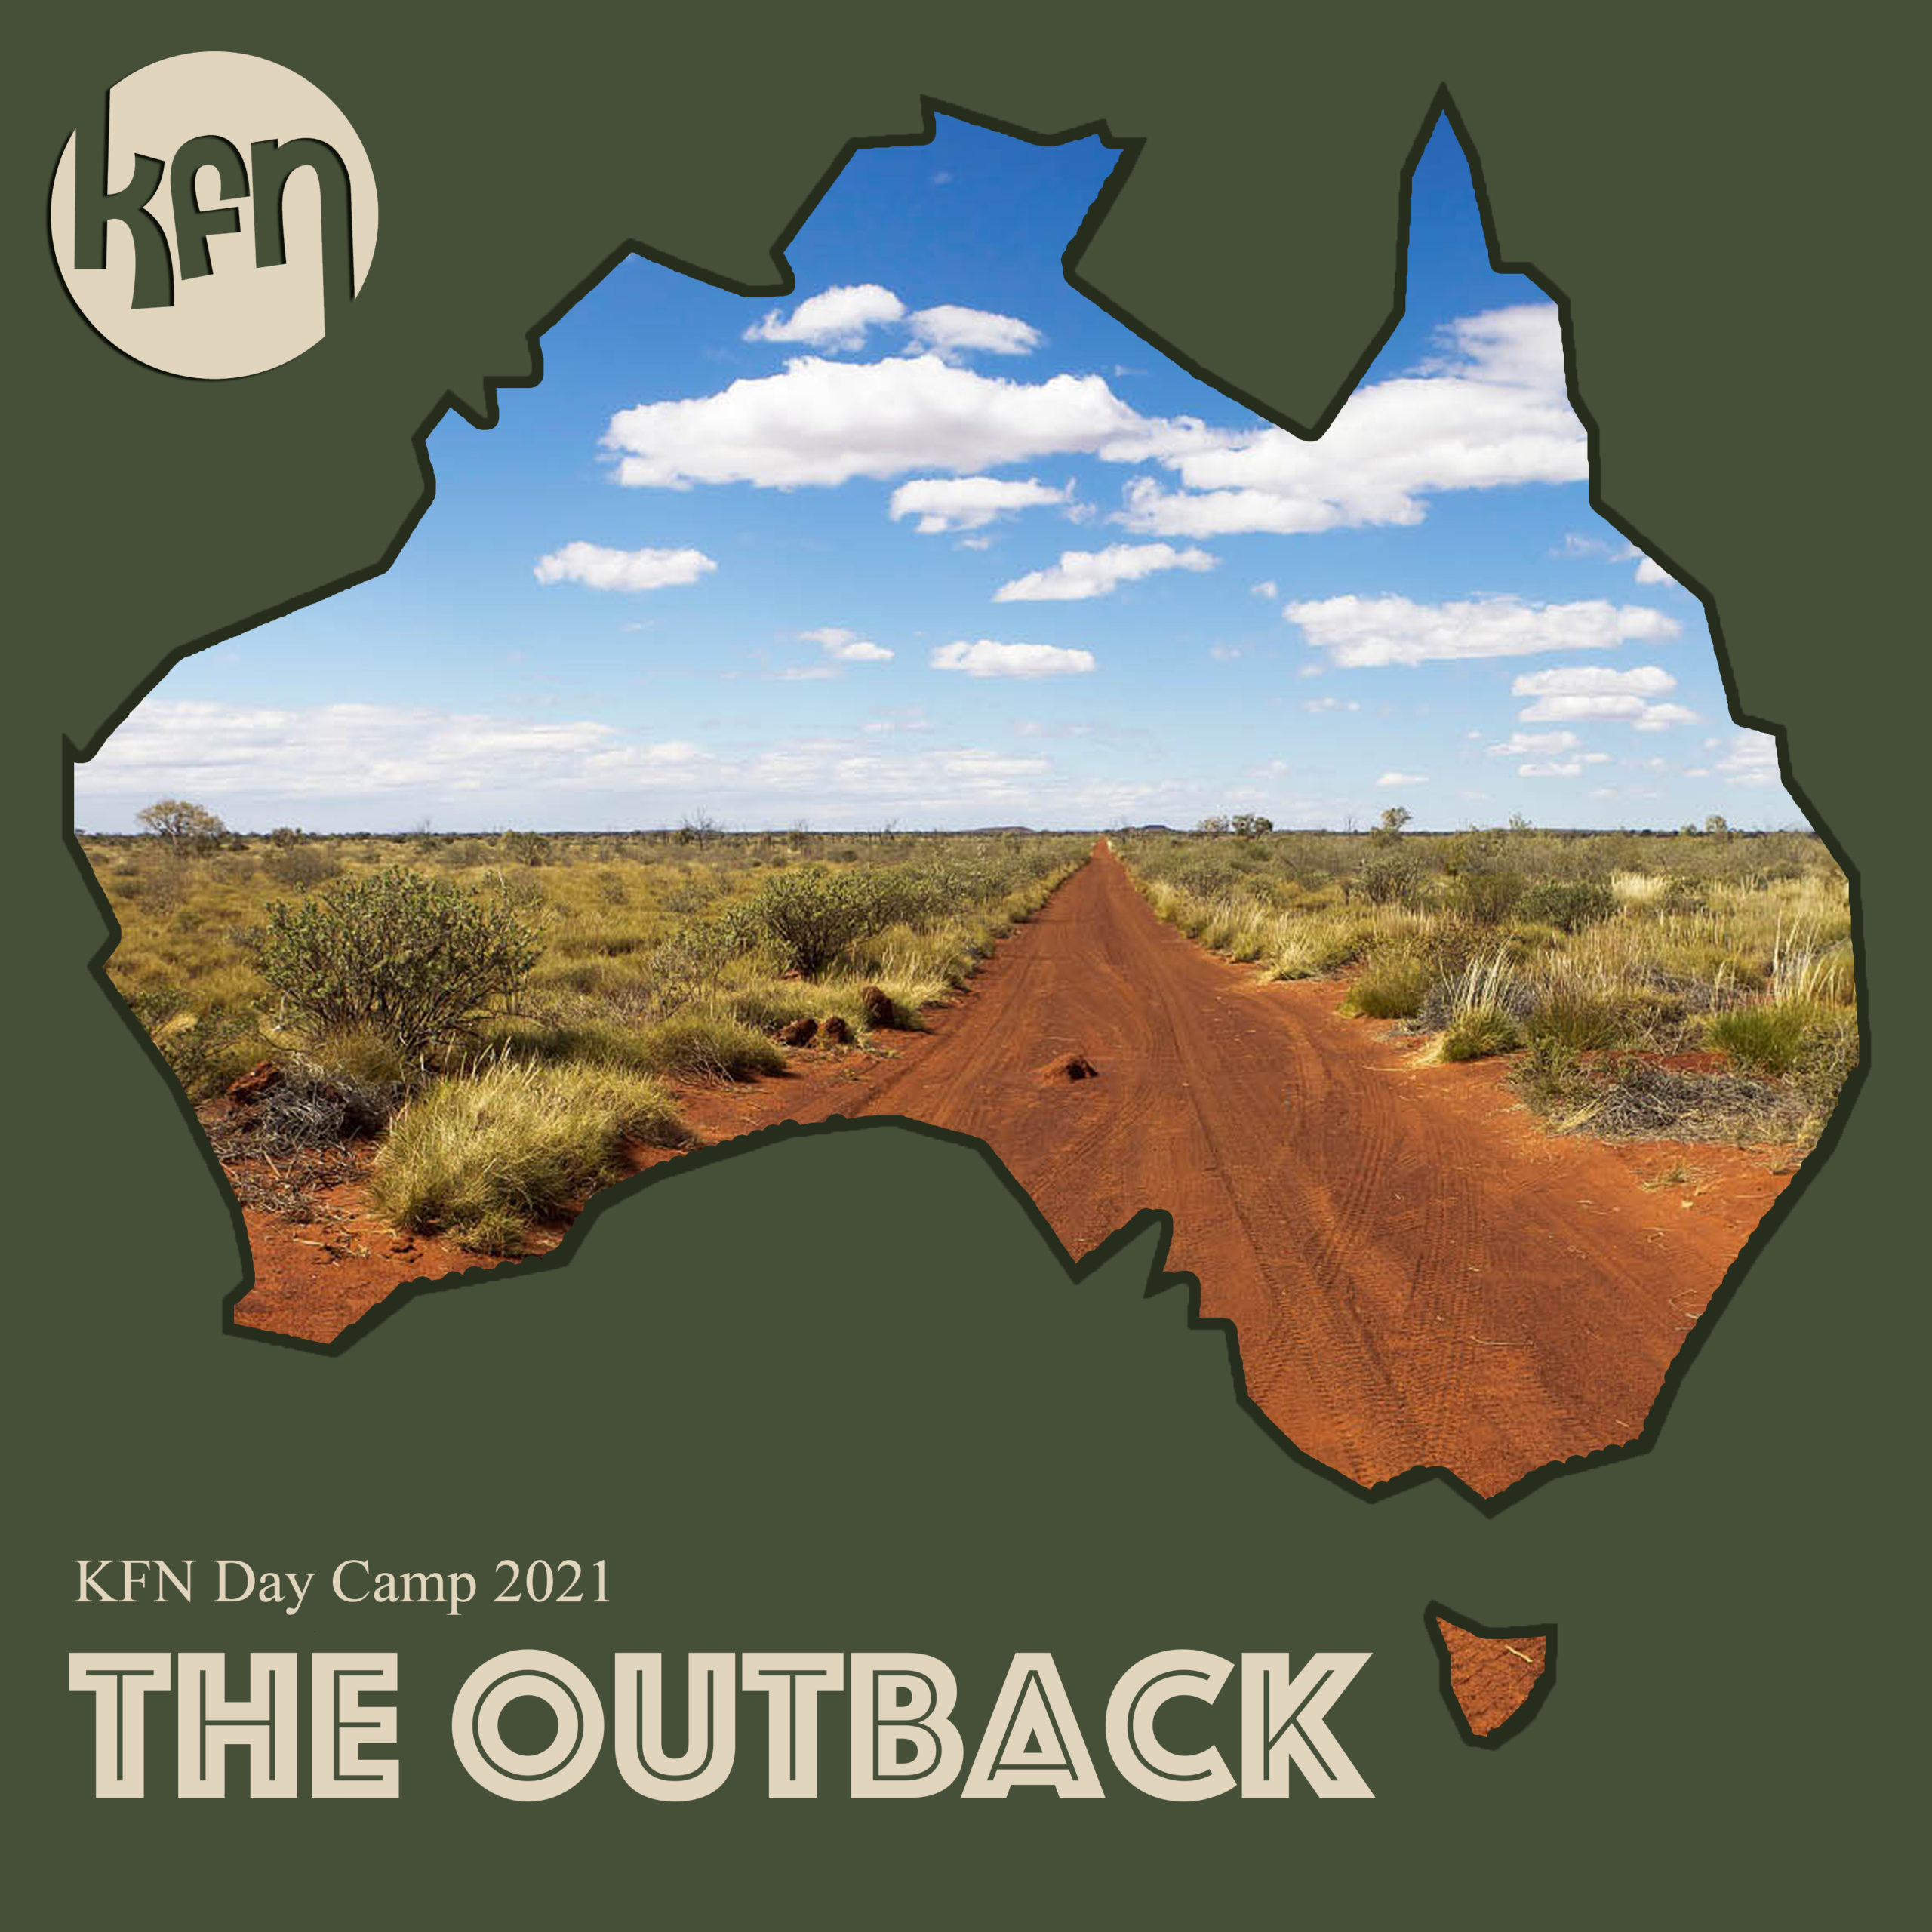 KFN Outback